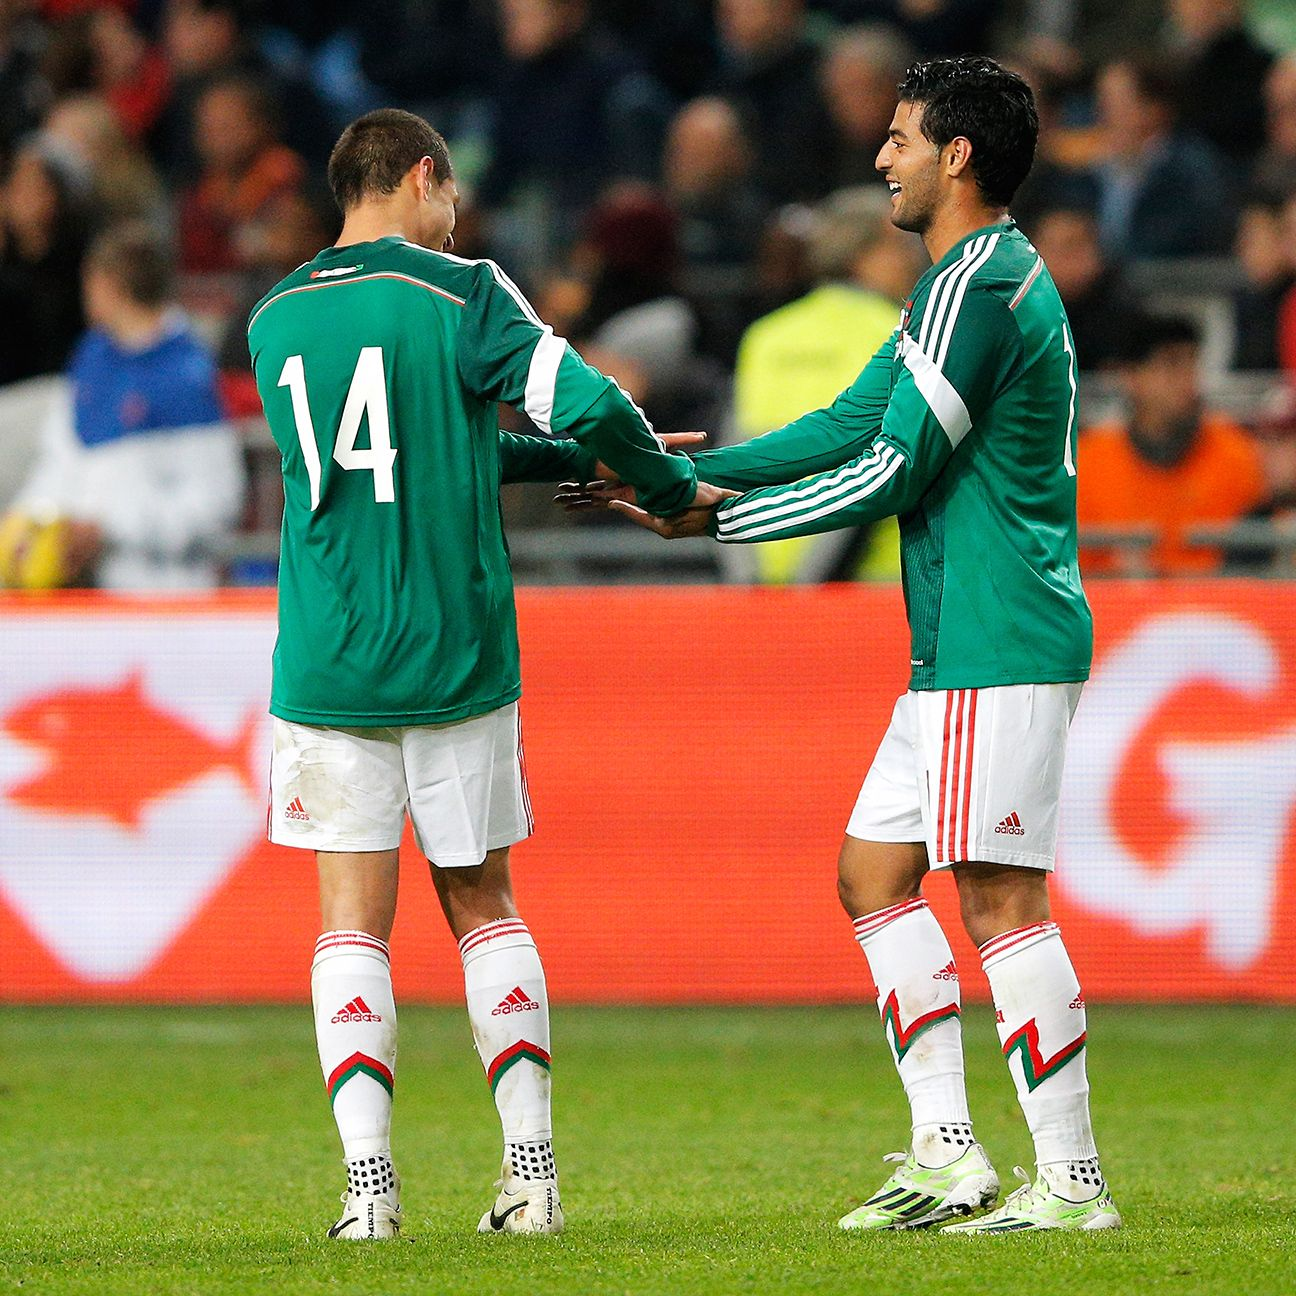 There were clear signs of chemistry between Chicharito Hernandez and Carlos Vela during Mexico's 3-2 win over the Netherlands last fall.